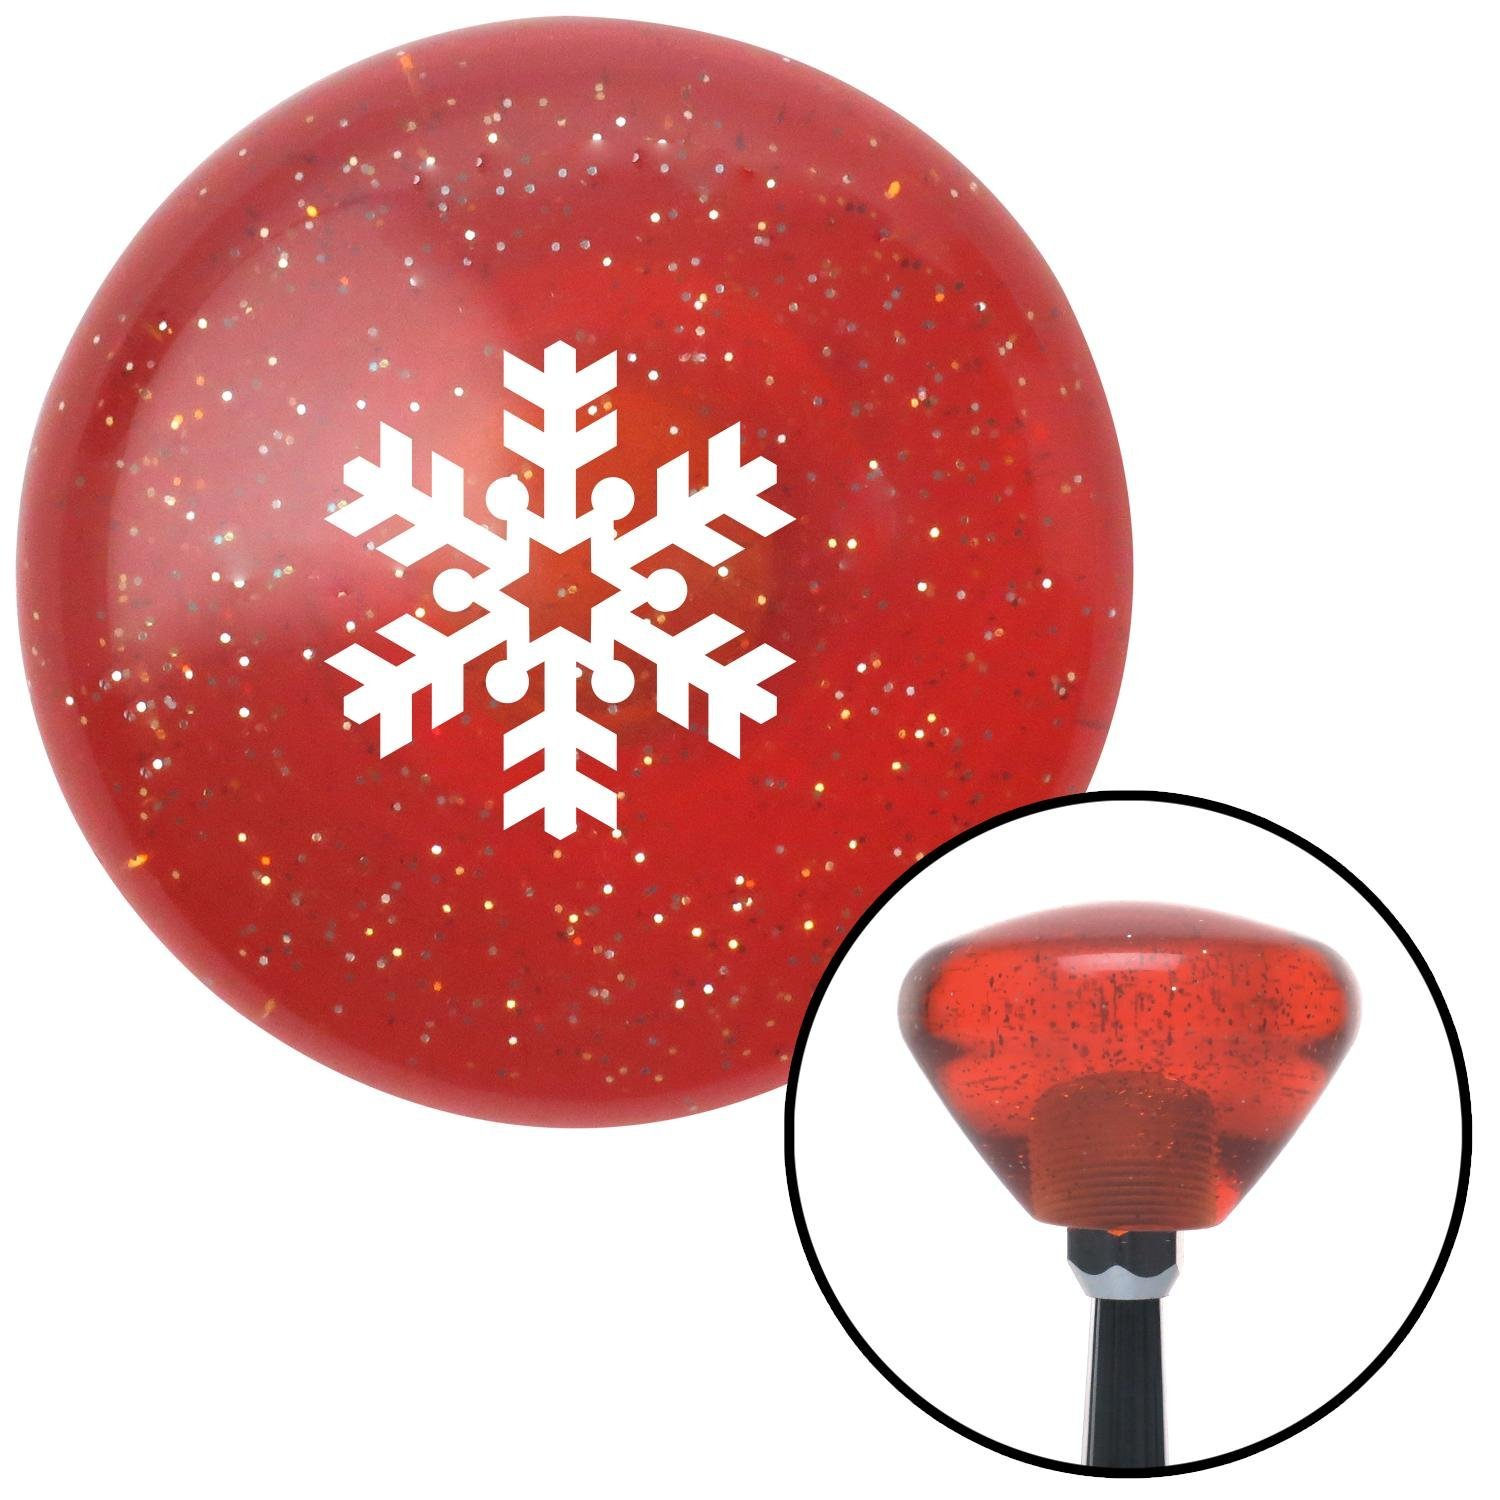 White Snowflake Filled in American Shifter 178722 Orange Retro Metal Flake Shift Knob with M16 x 1.5 Insert